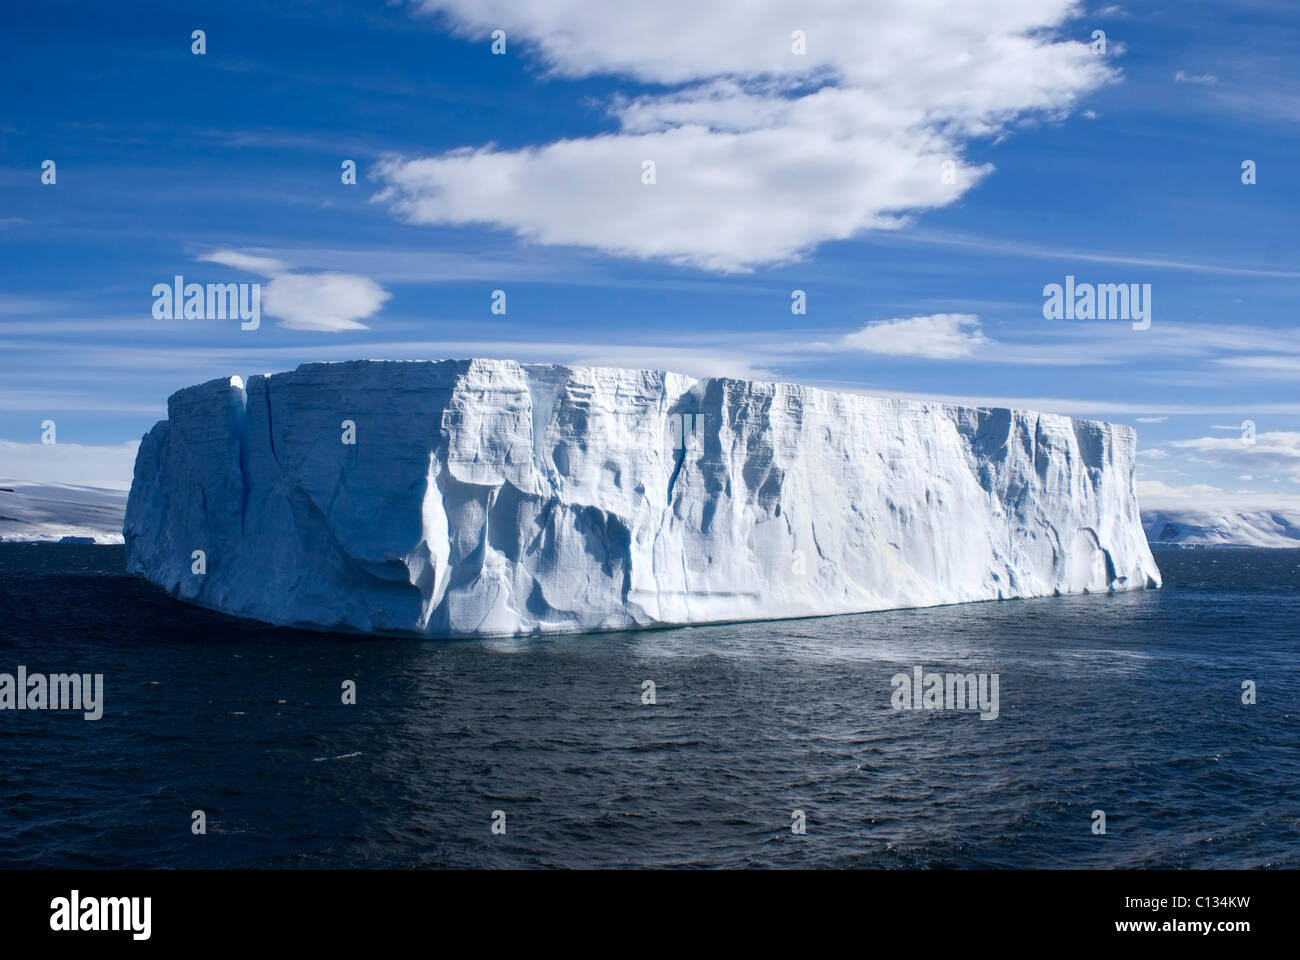 Large tableture iceberg with clear blue sky taken at Antarctica. - Stock Image